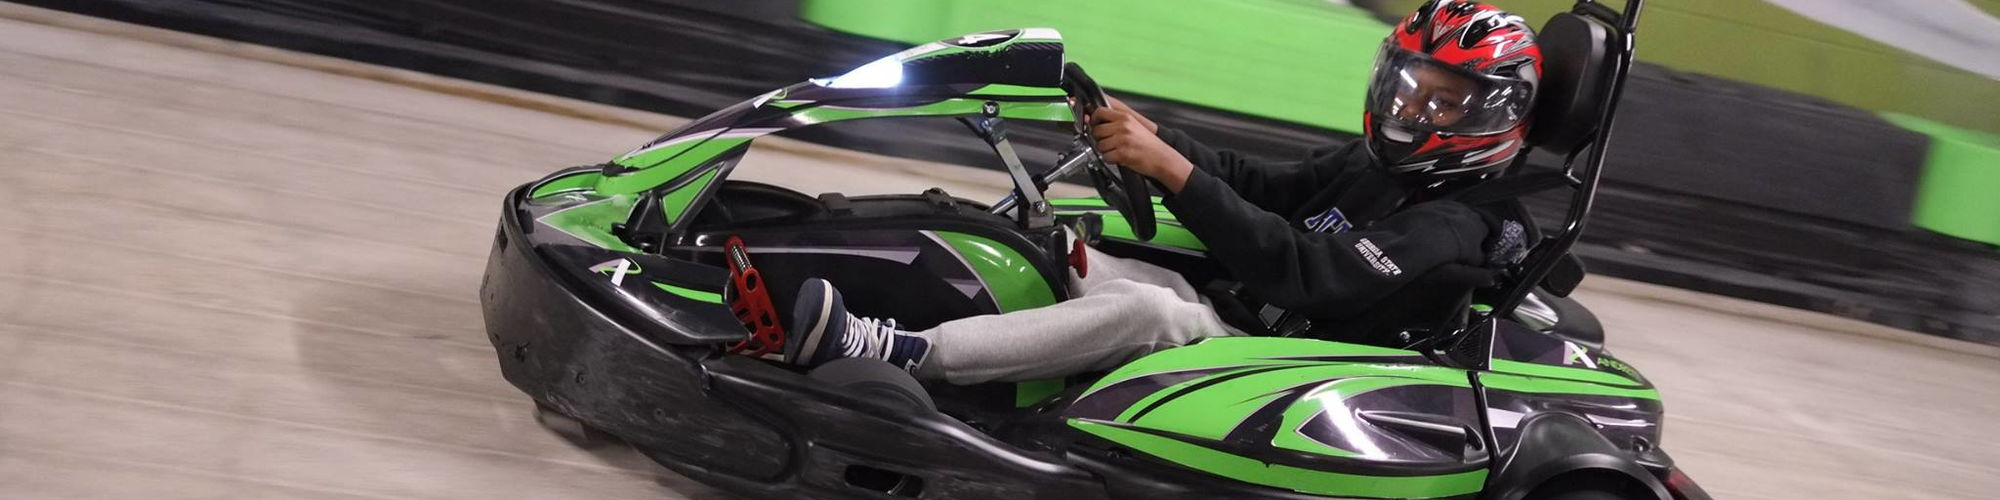 Andretti Indoor Karting & Games cover image